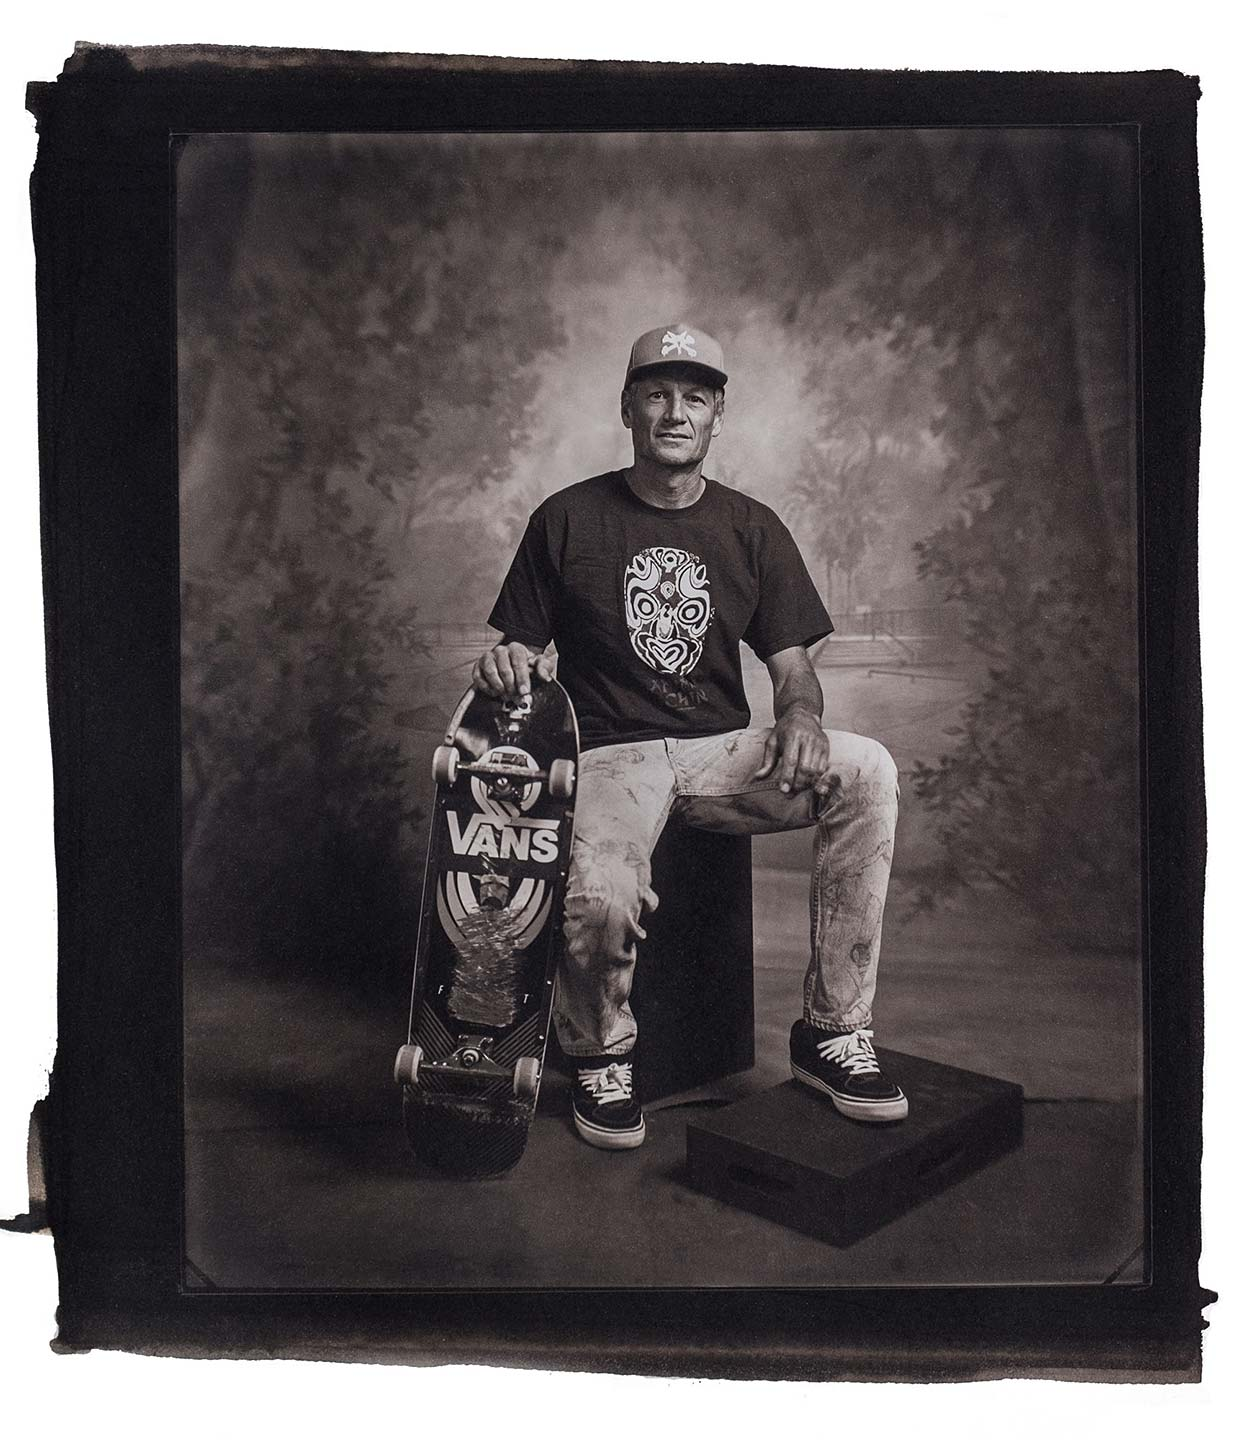 Mike McGill, Skateboard Legend, former Bones Brigade team member